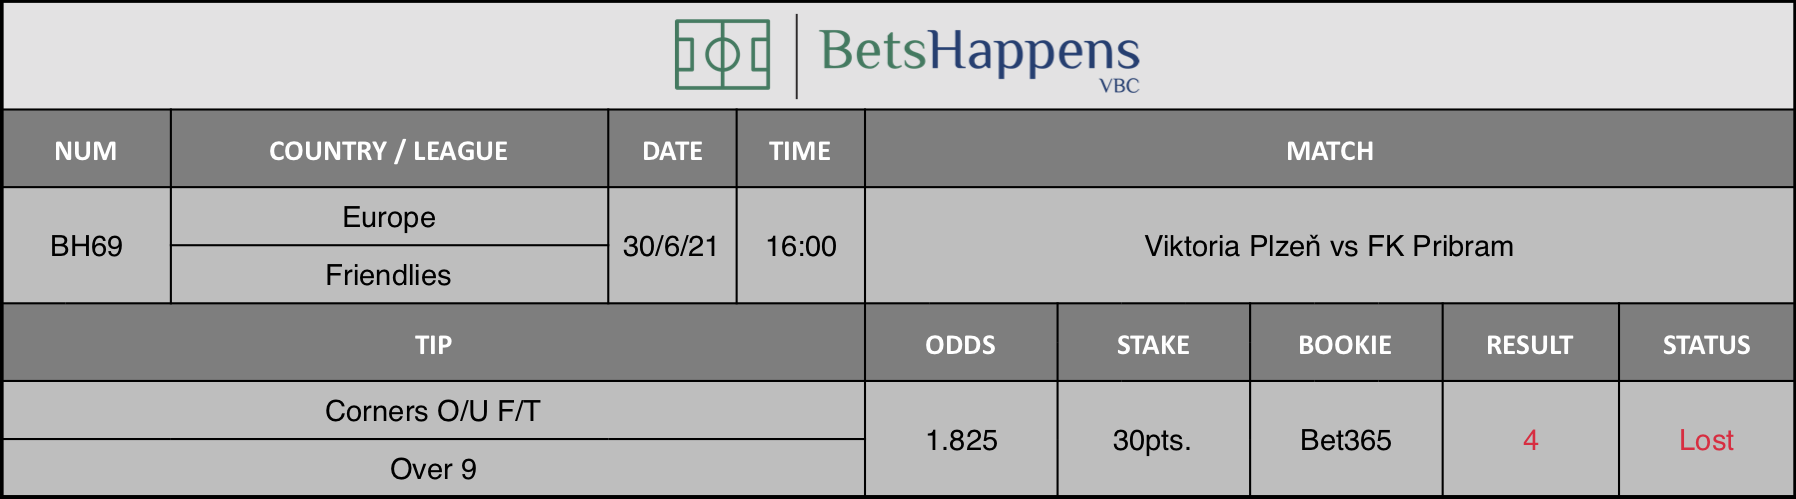 Results of our tip for the Viktoria Plzeň vs FK Pribram match Corners O/U F/T Over 9 is recommended.